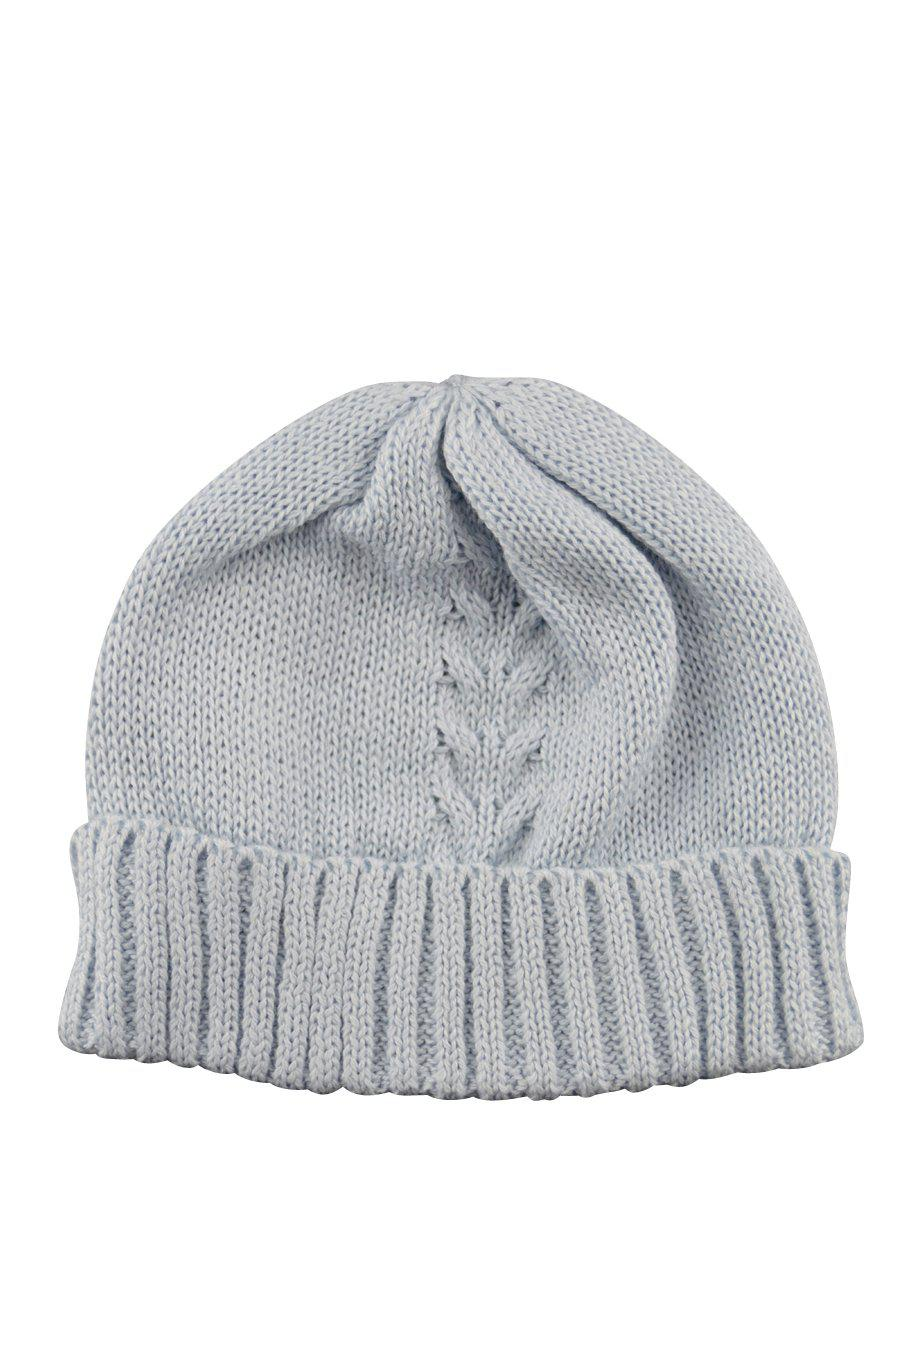 Blue Knitted Hat - Little Threads Inc. Children's Clothing